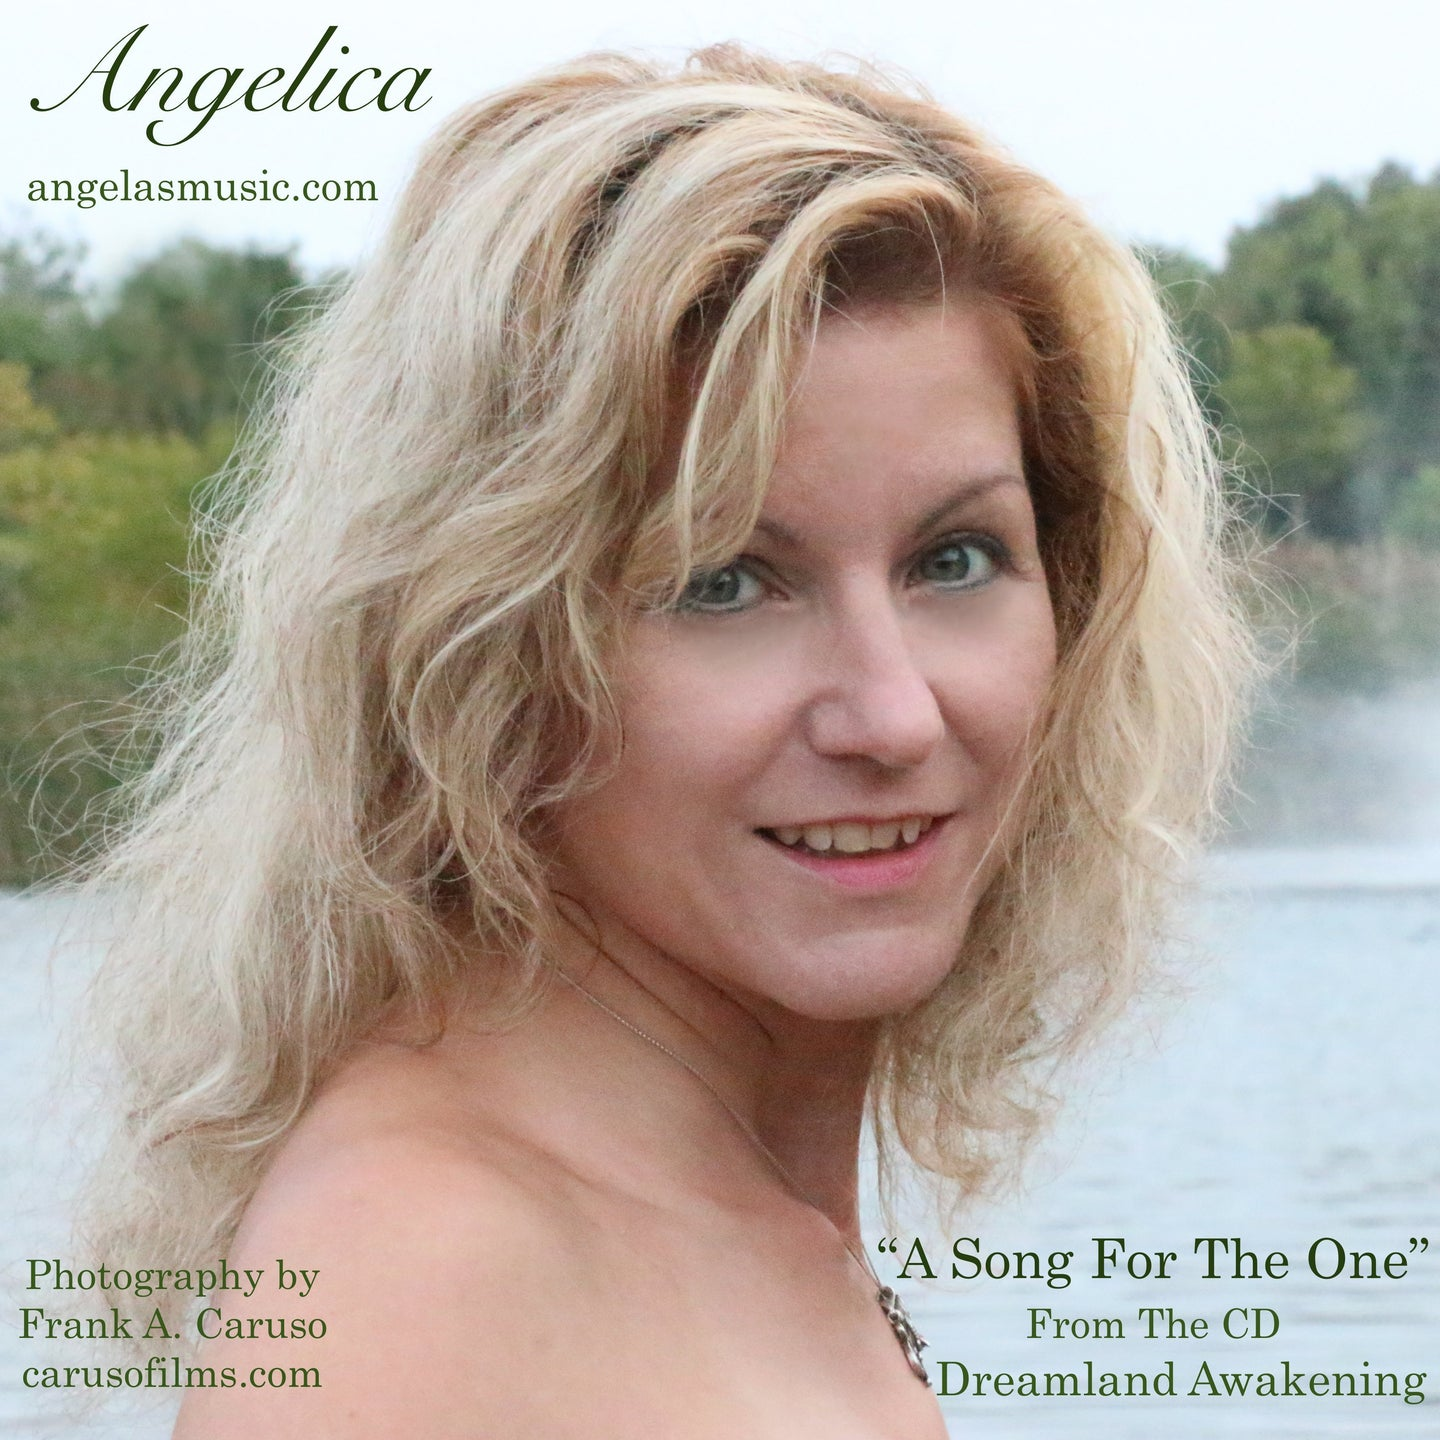 A Song For The One - Angelica - angelicasmusic-com